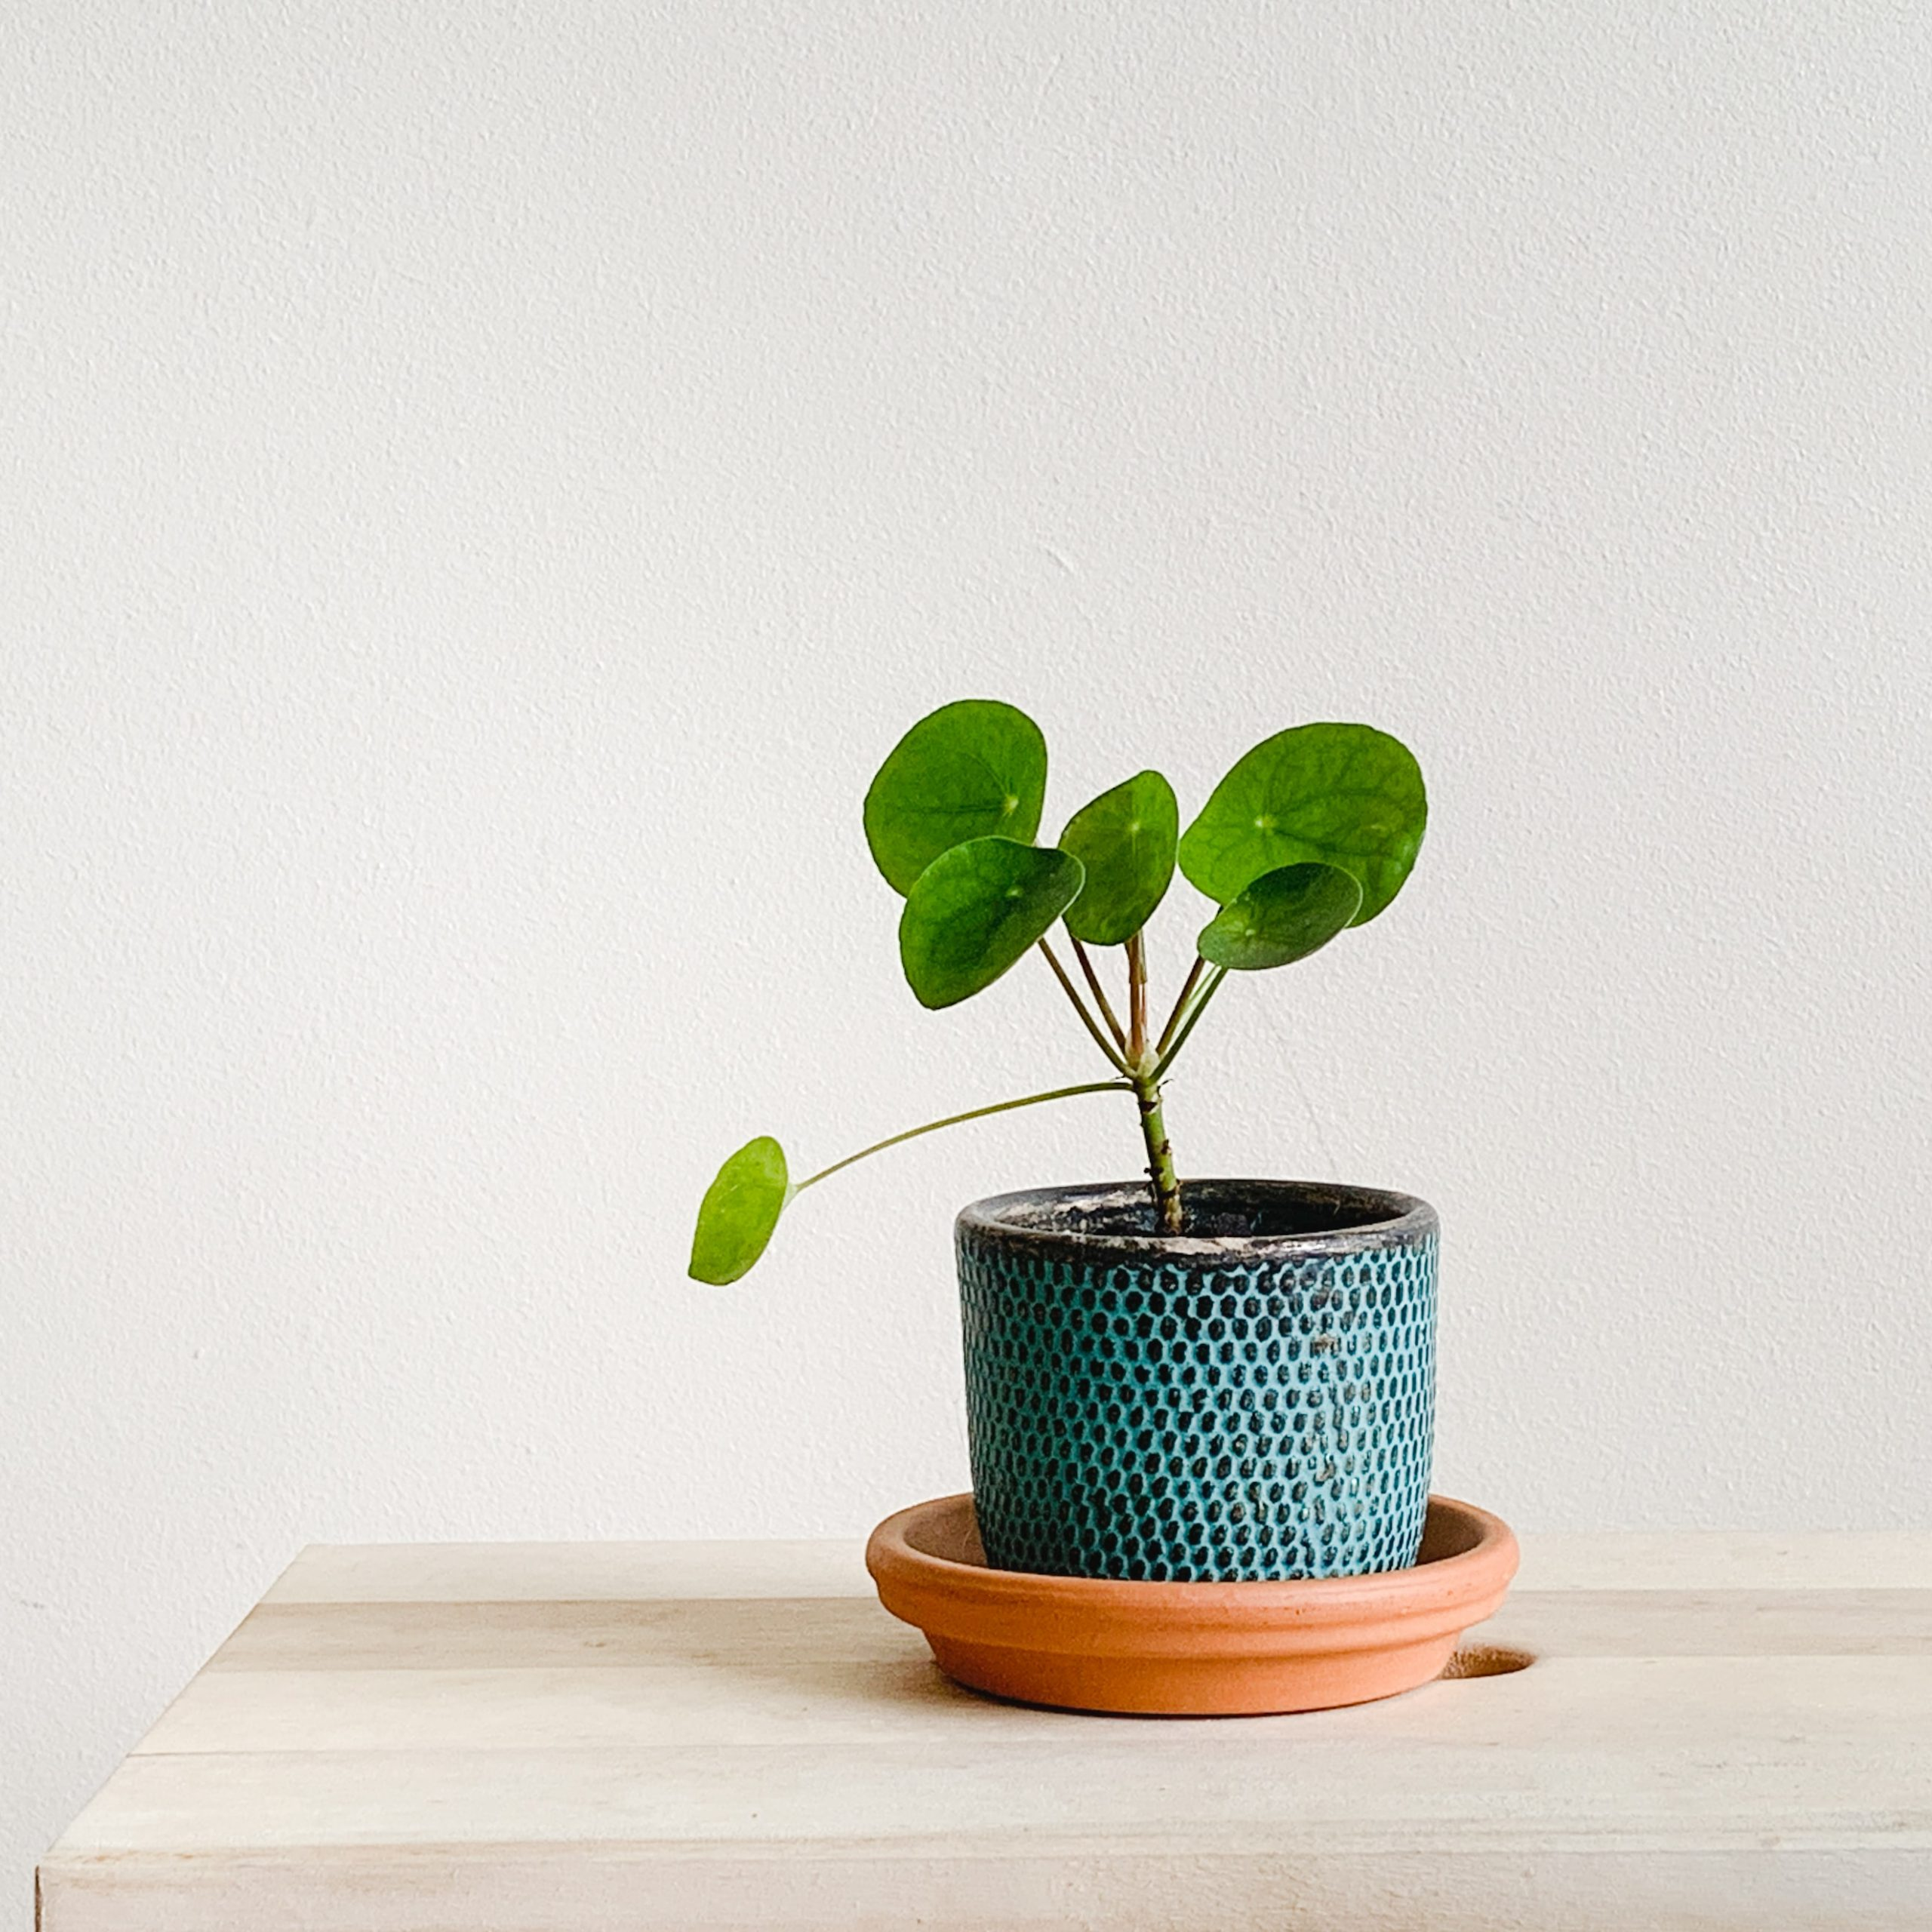 Chinese Money Plant – 6 Facts About the Plant